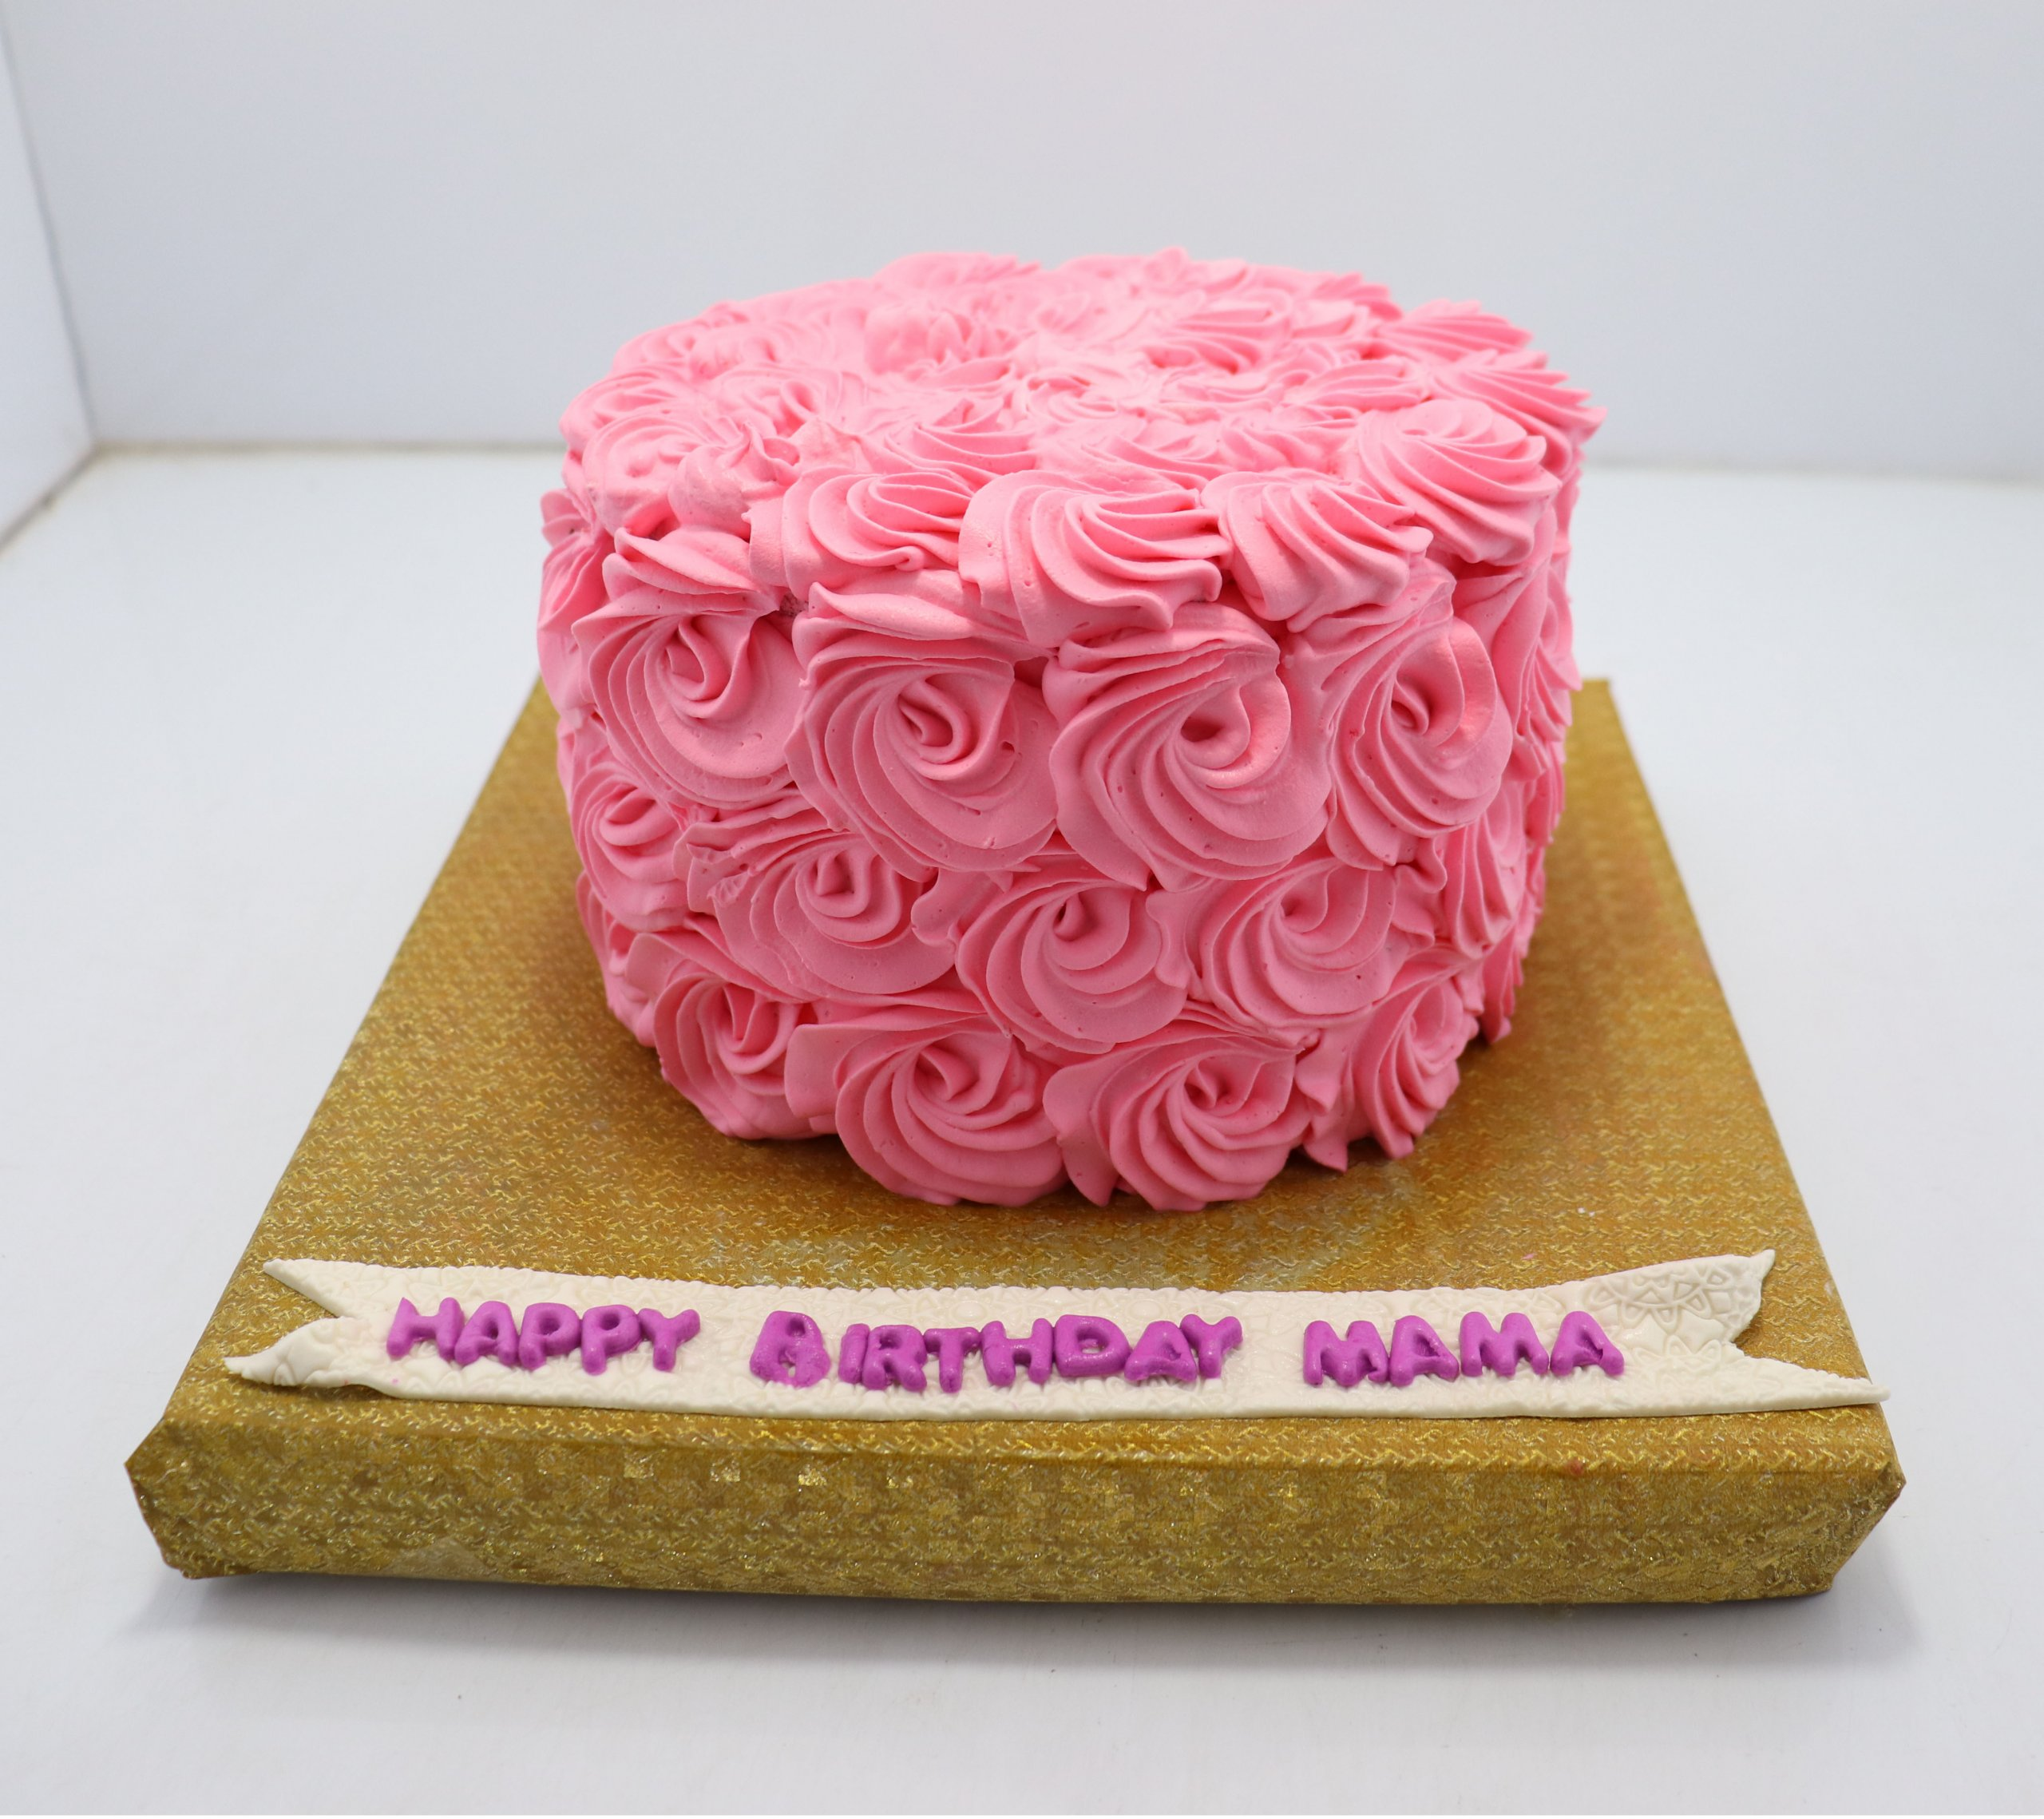 Stupendous Special Pink Birthday Cake Become Special For Your Special Ones Funny Birthday Cards Online Sheoxdamsfinfo